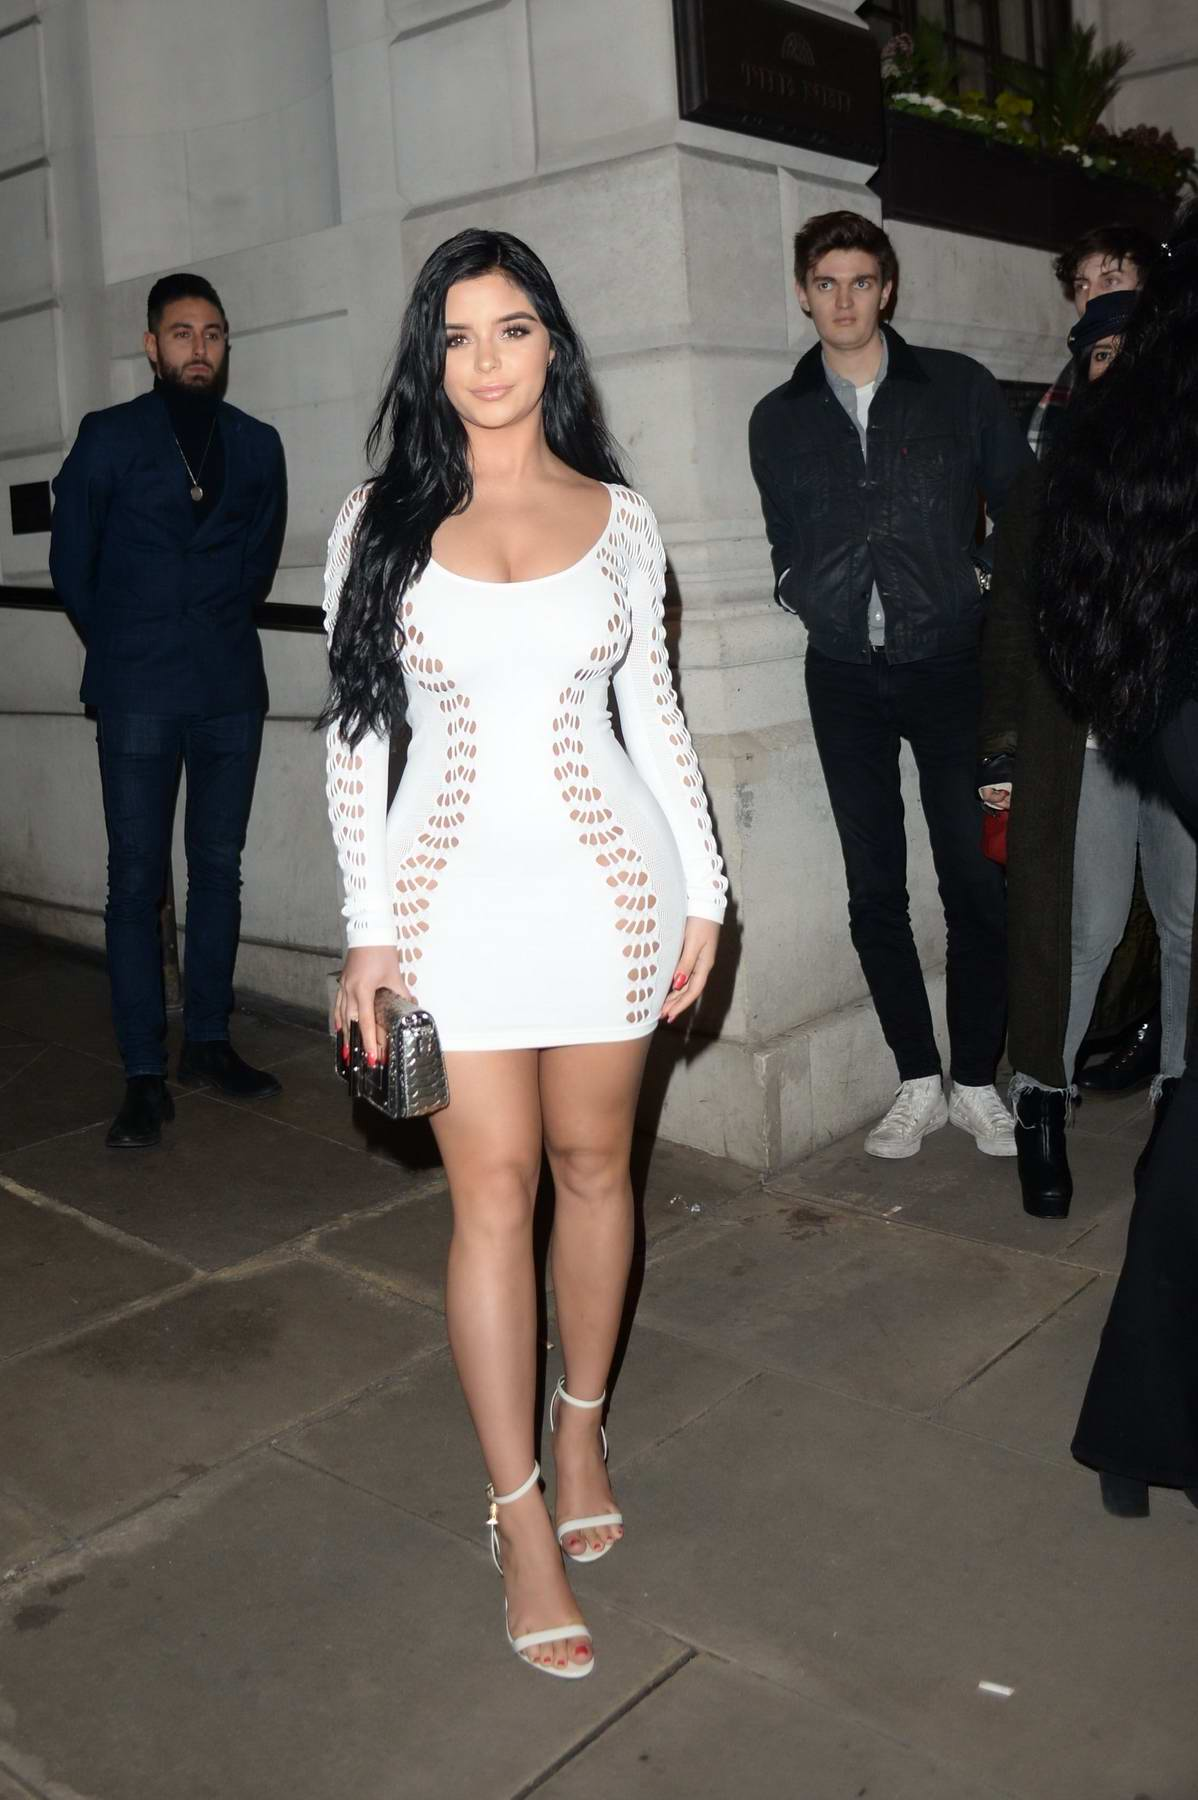 Demi Rose Mawby attends Wonderland Magazine x MTV Party during London Fashion Week A/W 2018 in London